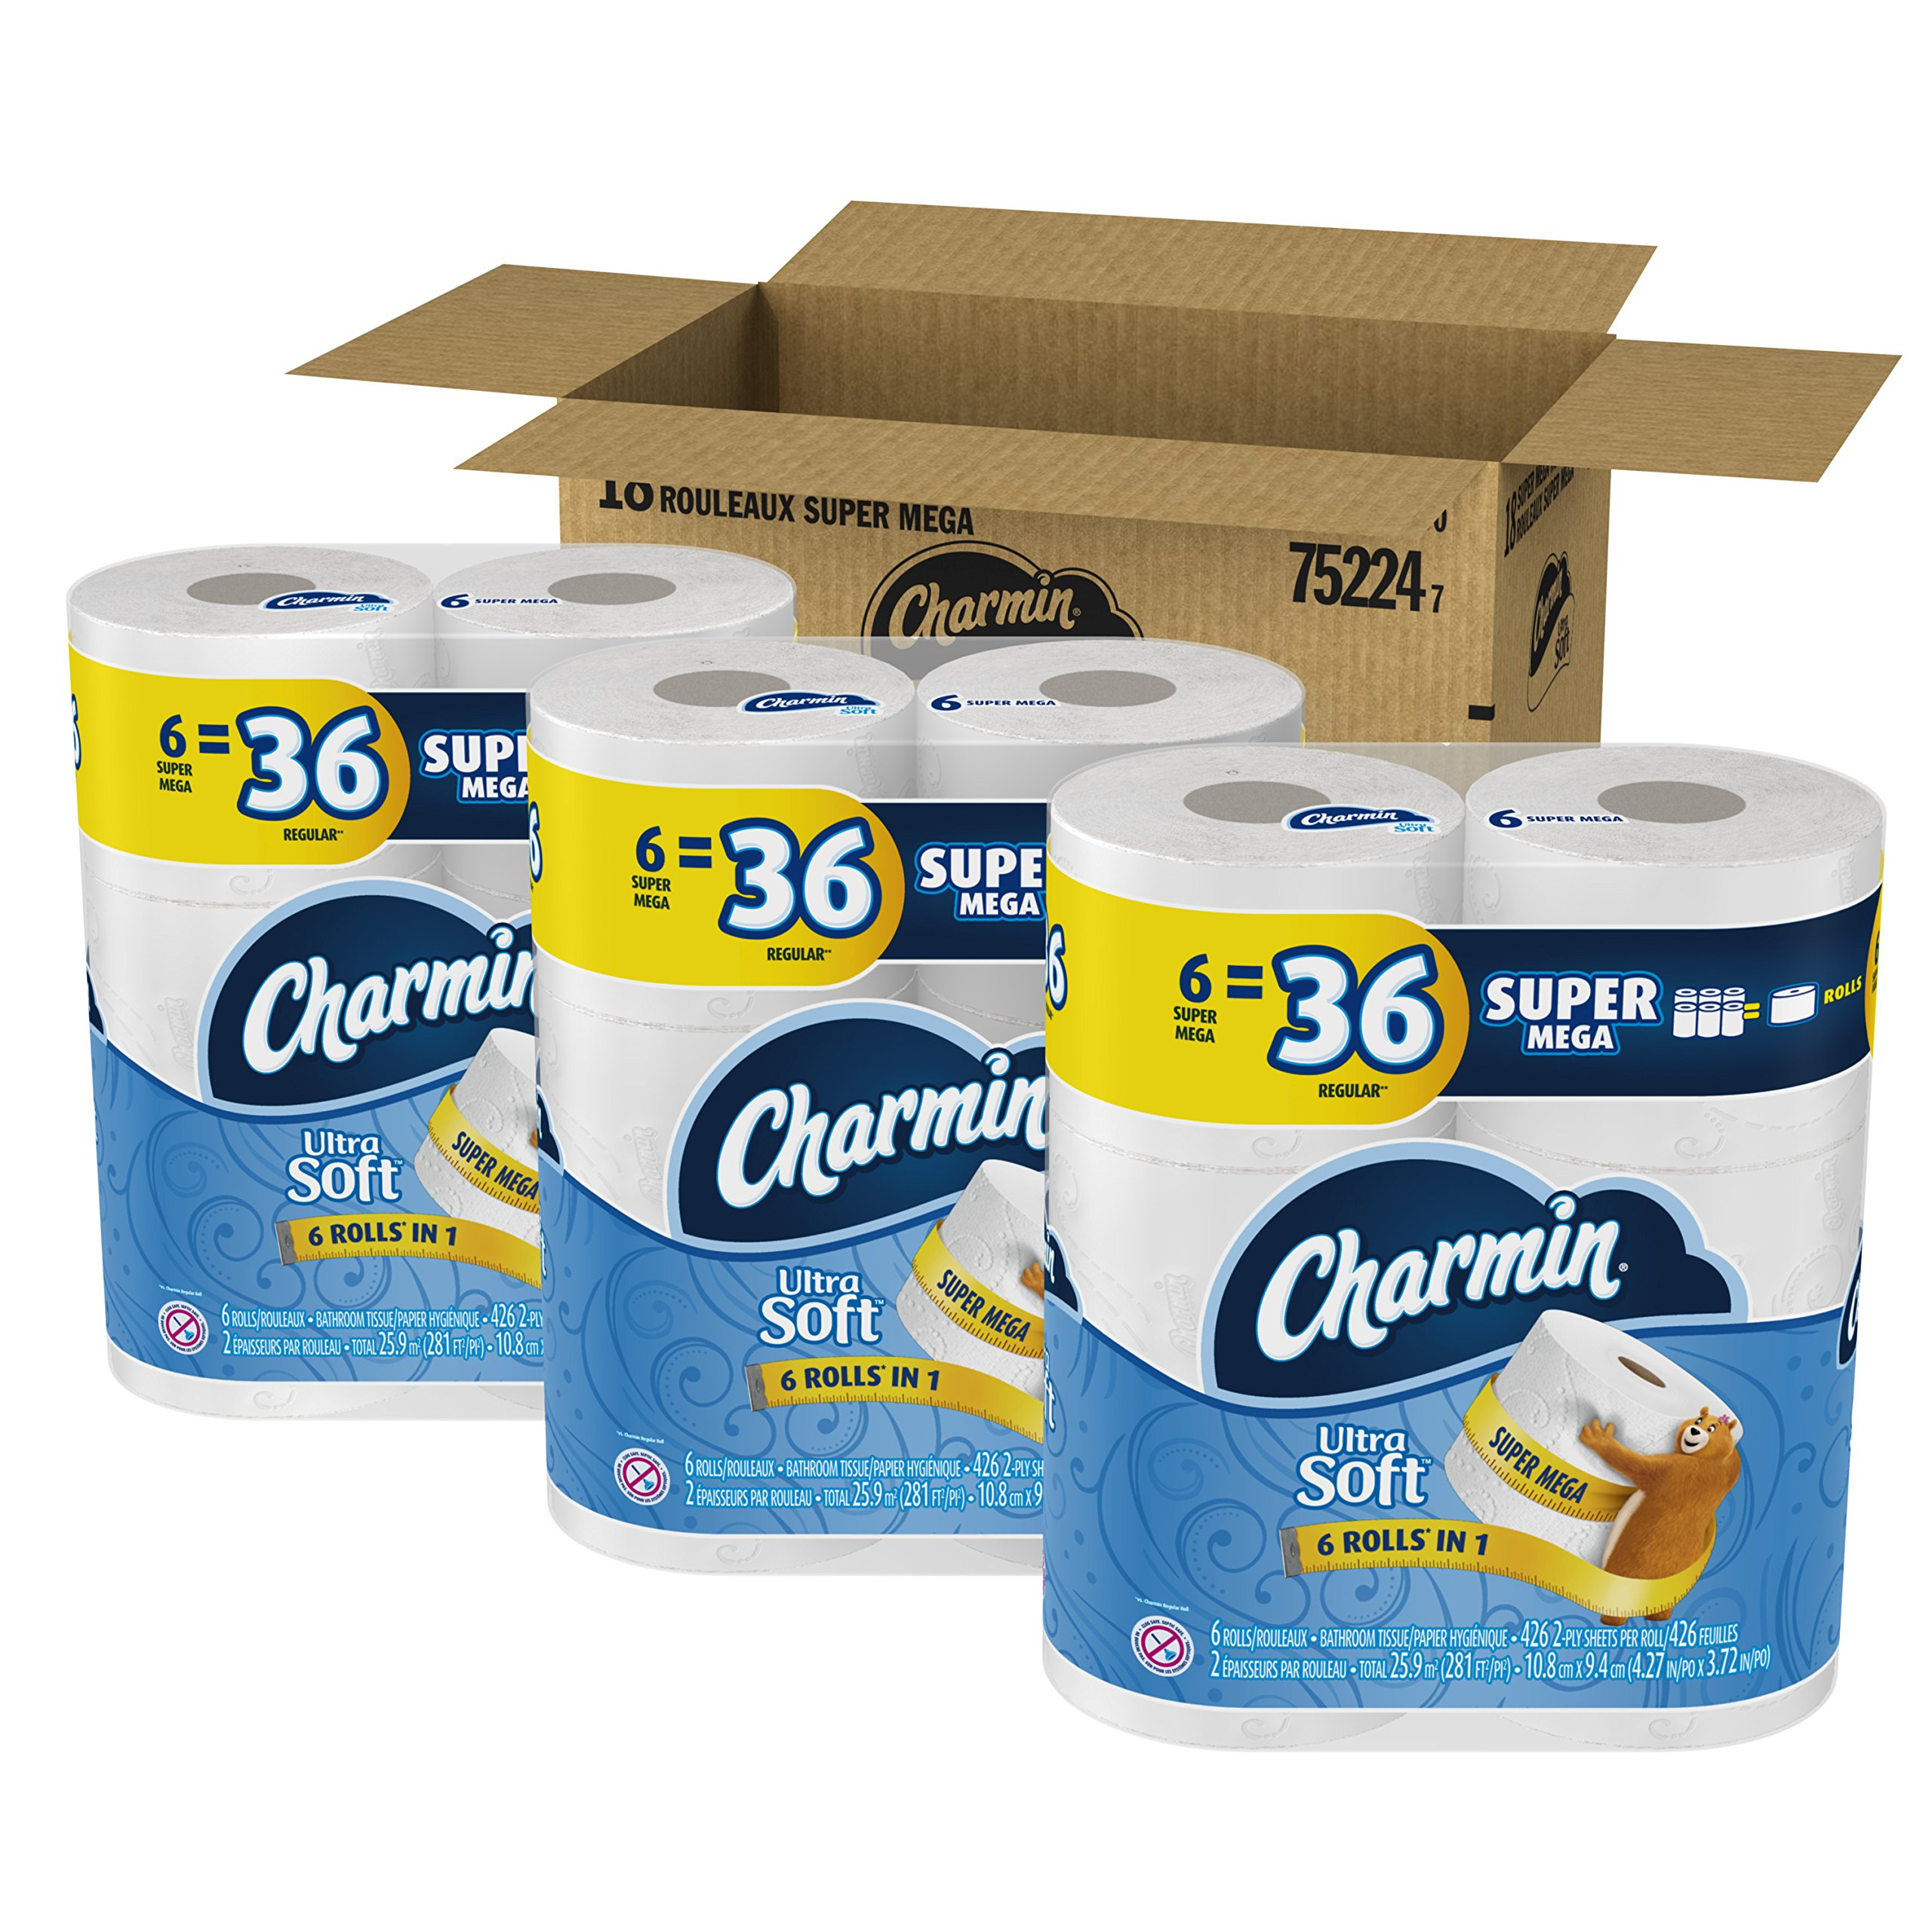 Amazon.com: Charmin Ultra Strong Clean Touch Toilet Paper ...